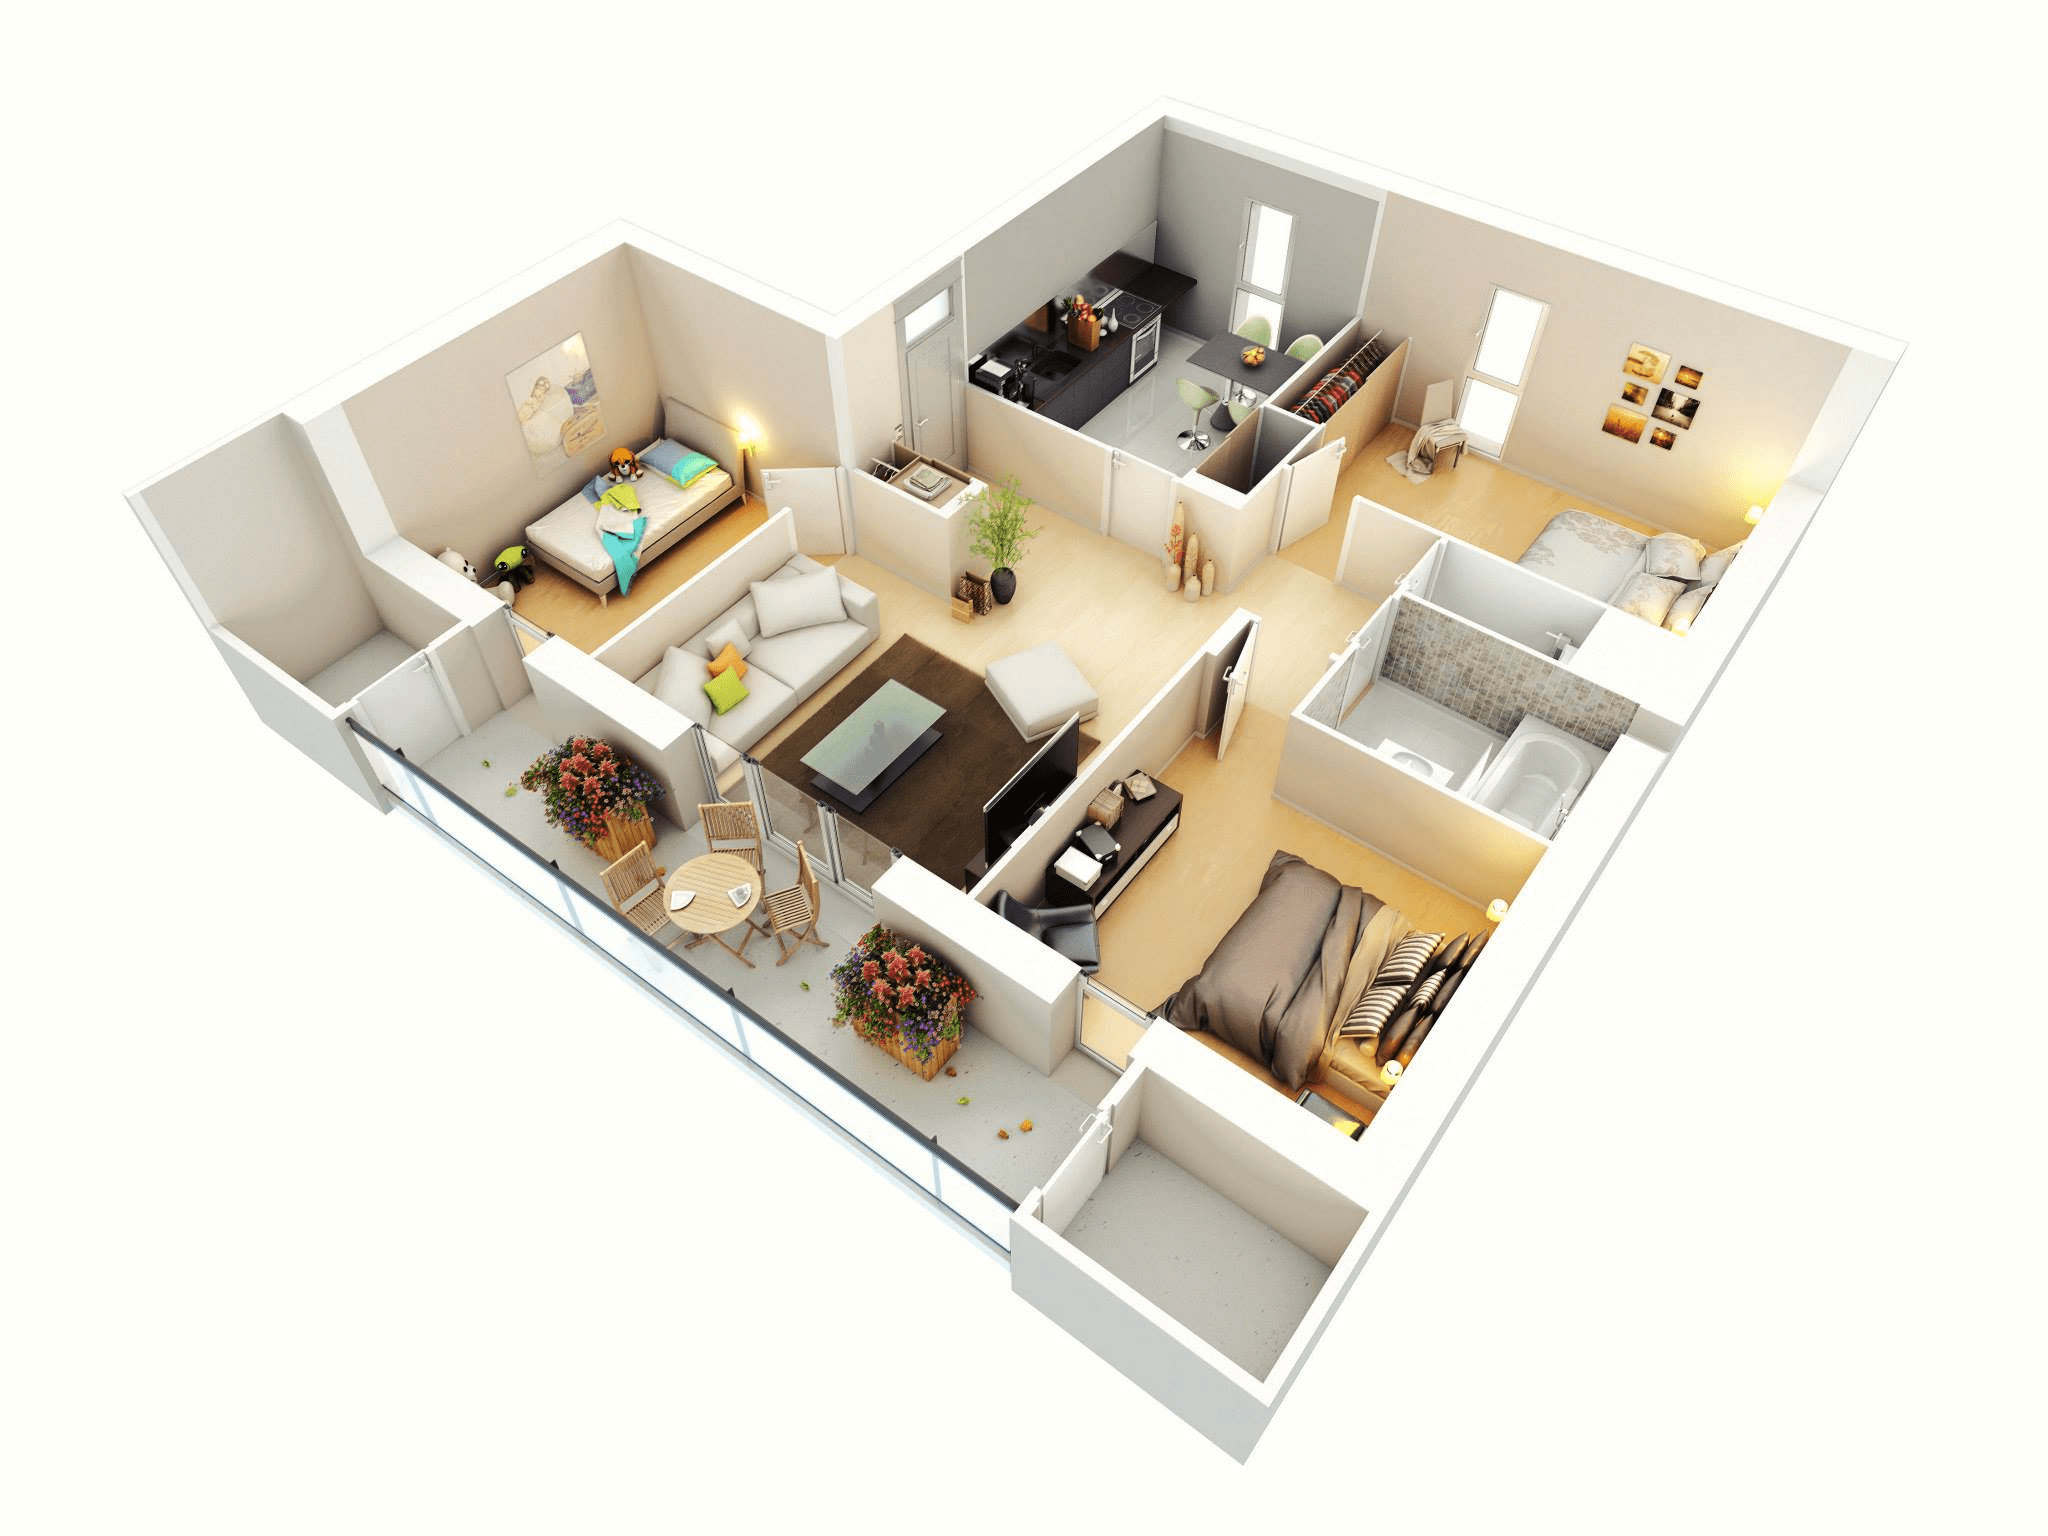 3 Bedroom Apartment Floor Plans 3D 1200 Sqft (Image 1 of 11)